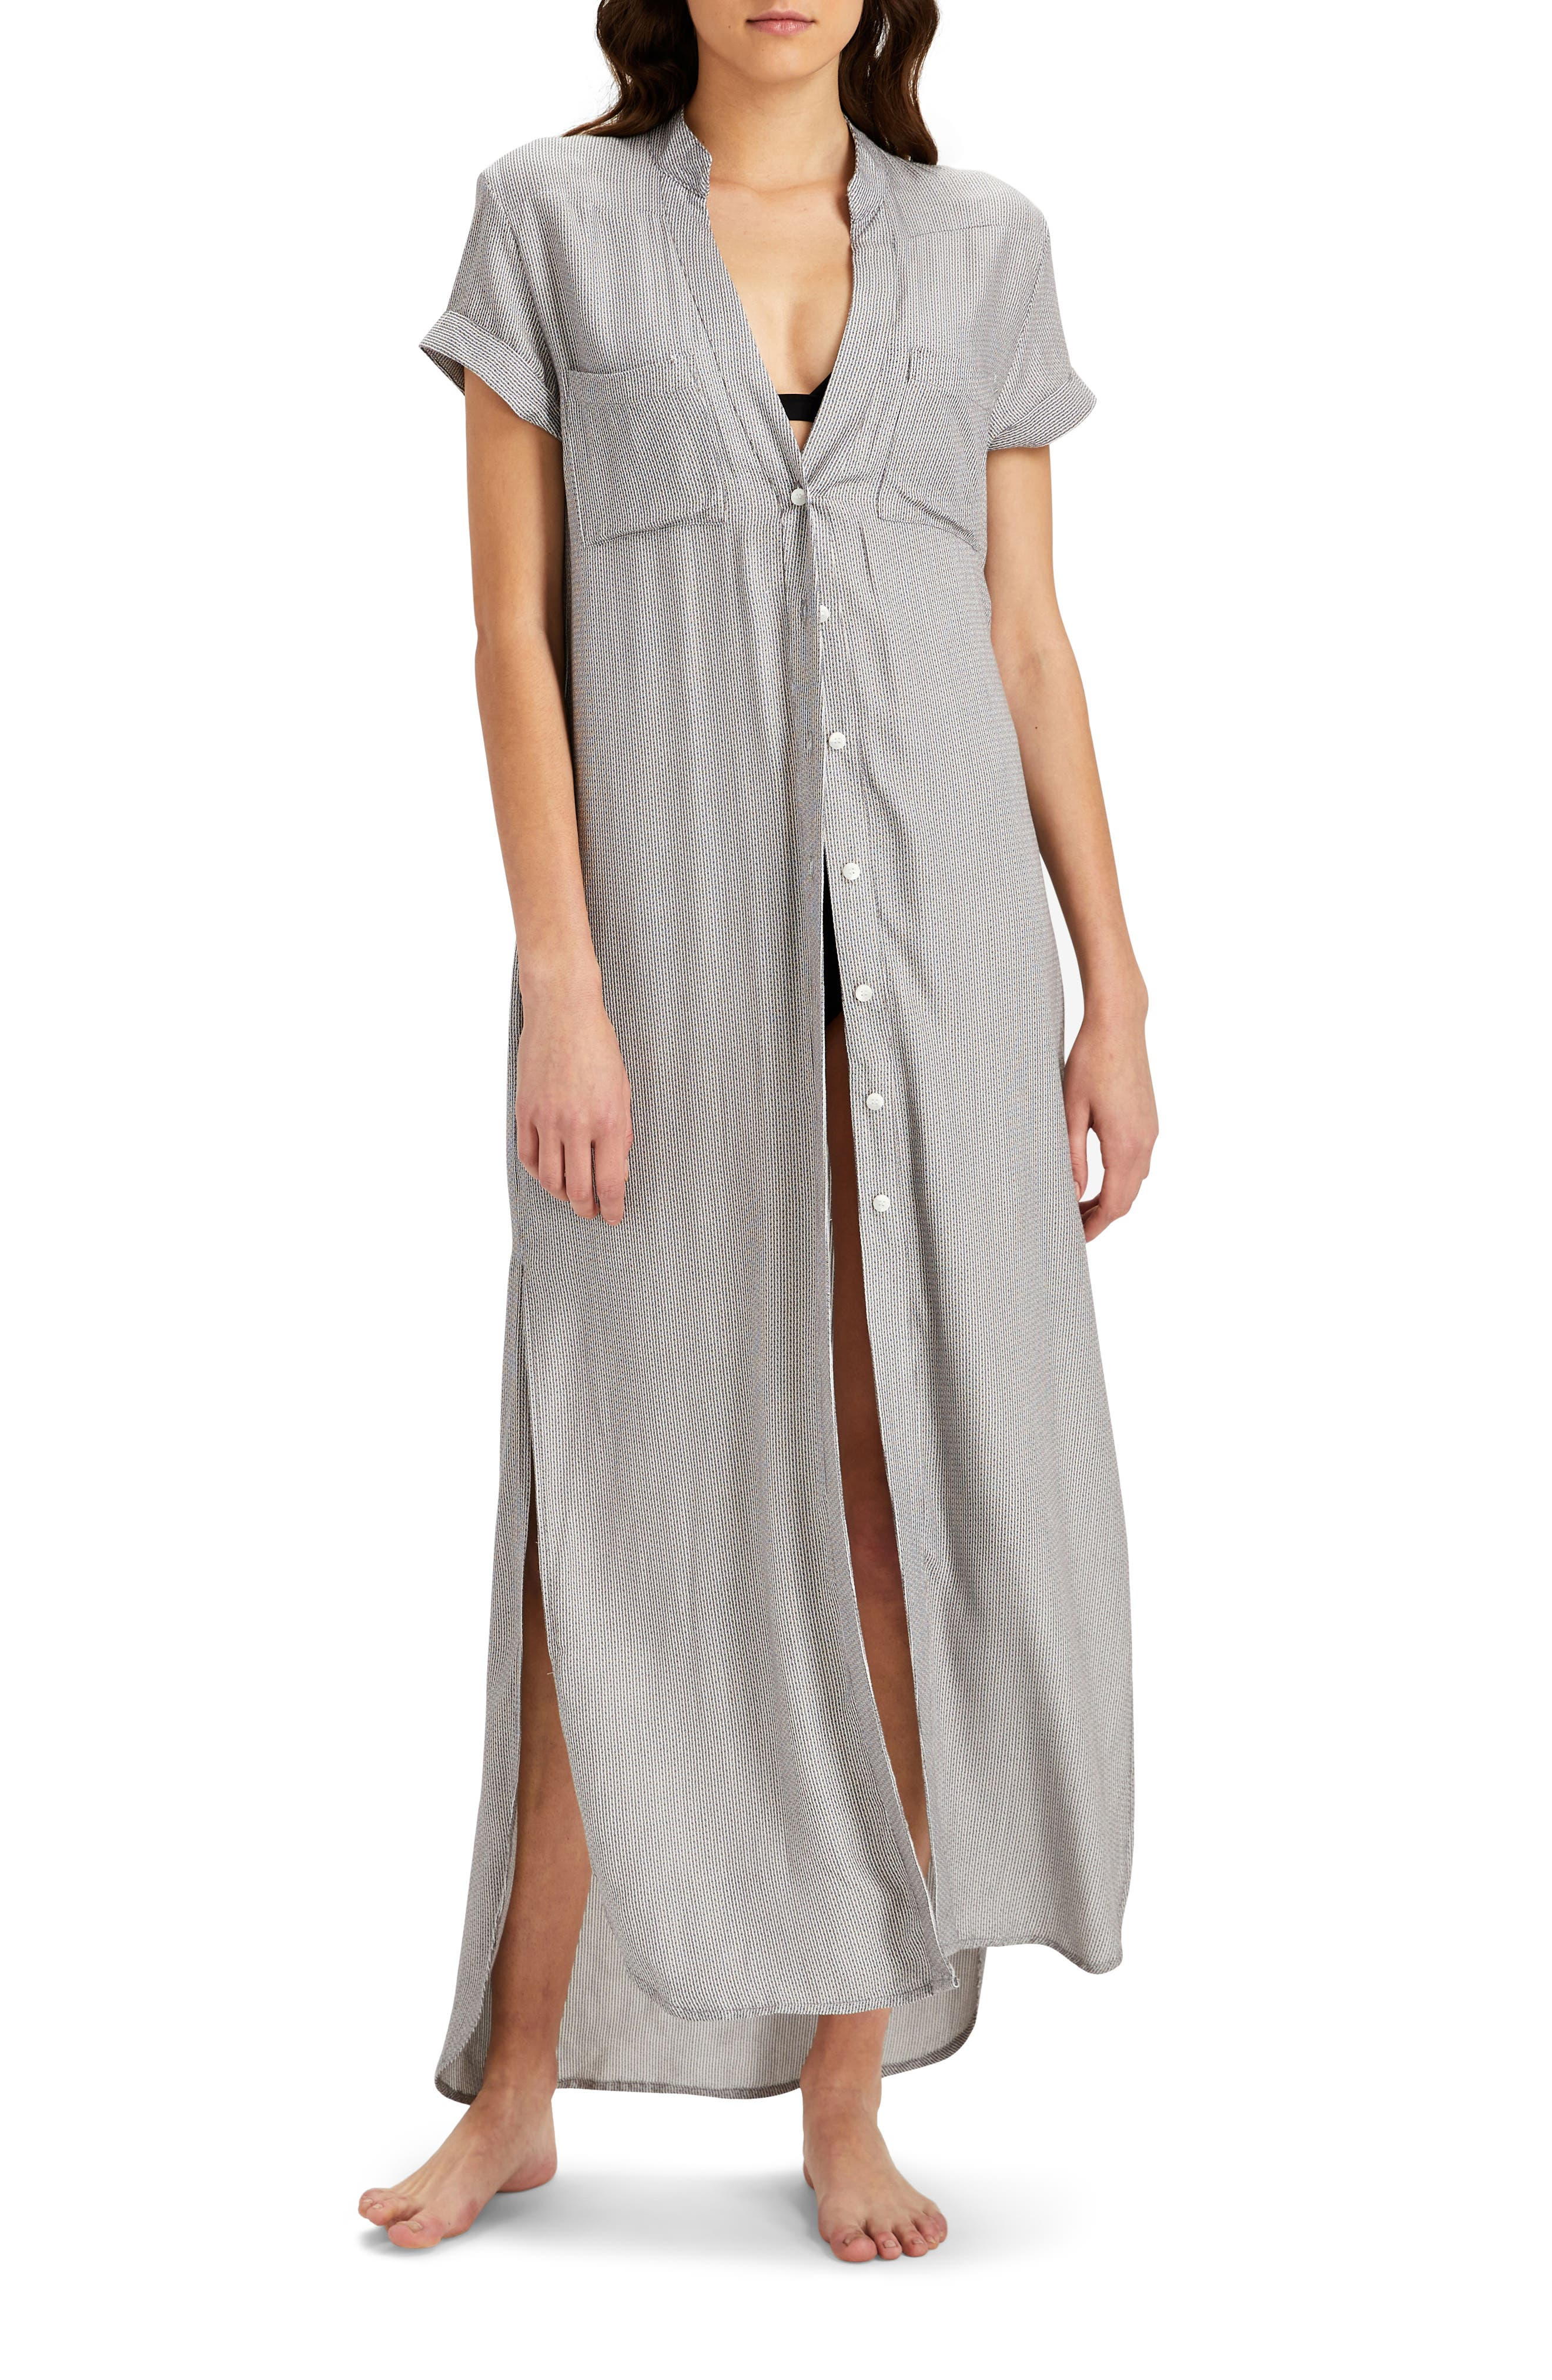 Kim Button Down Cover-Up Dress,                         Main,                         color, 022